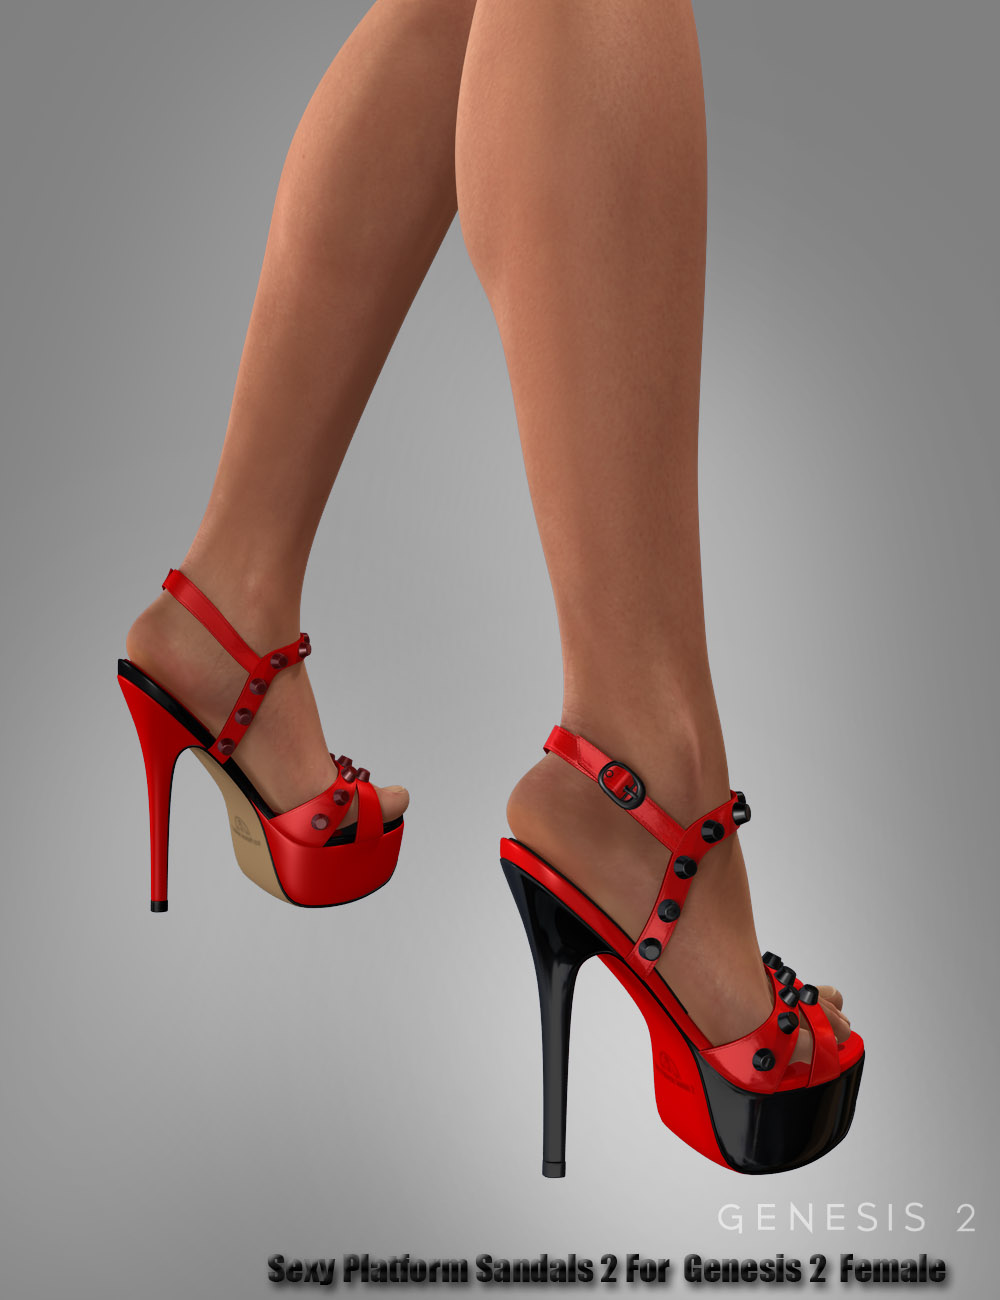 Sexy Platform Sandals 2 For Genesis 2 Female(s) by: dx30, 3D Models by Daz 3D